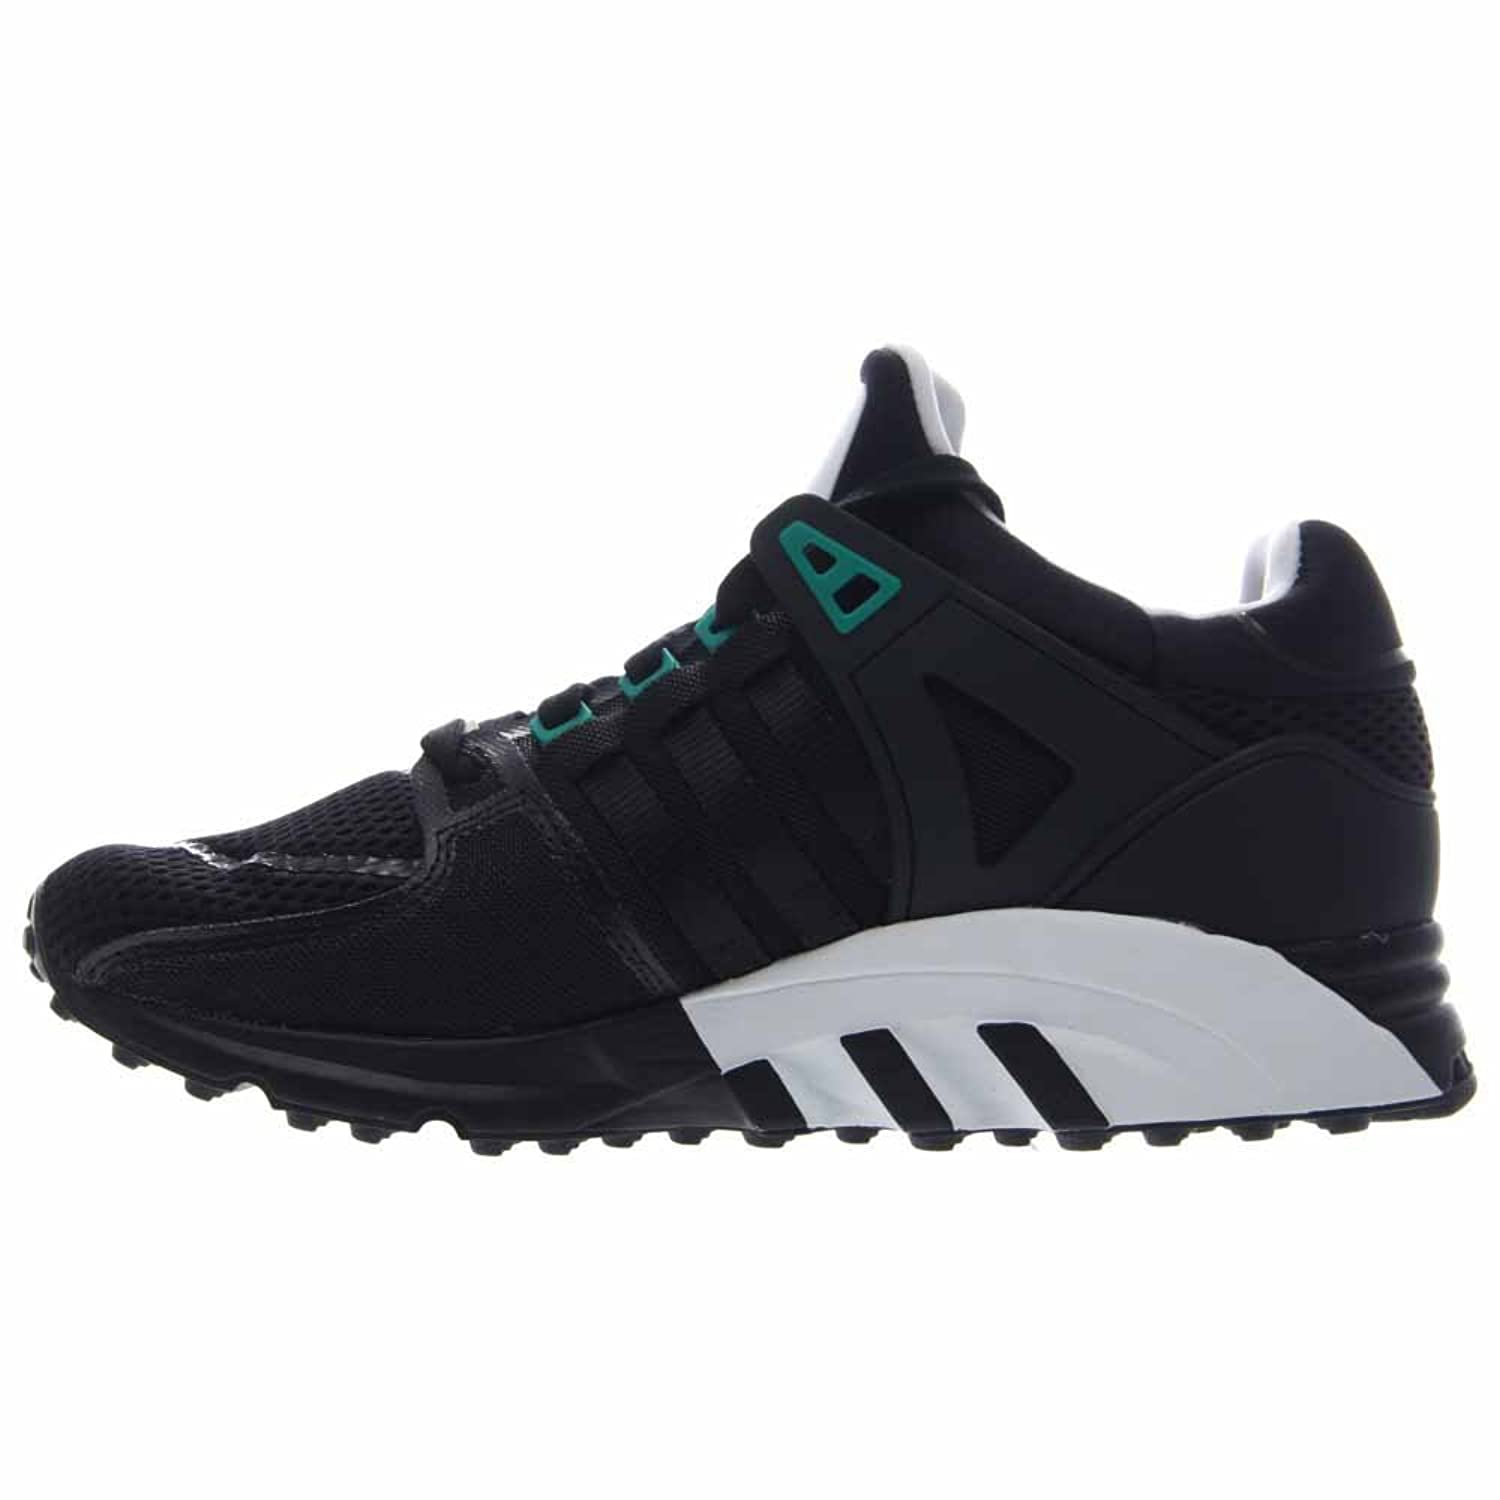 2ef3f090e6d05 Equipment Running Support Mens in Antgol by Adidas